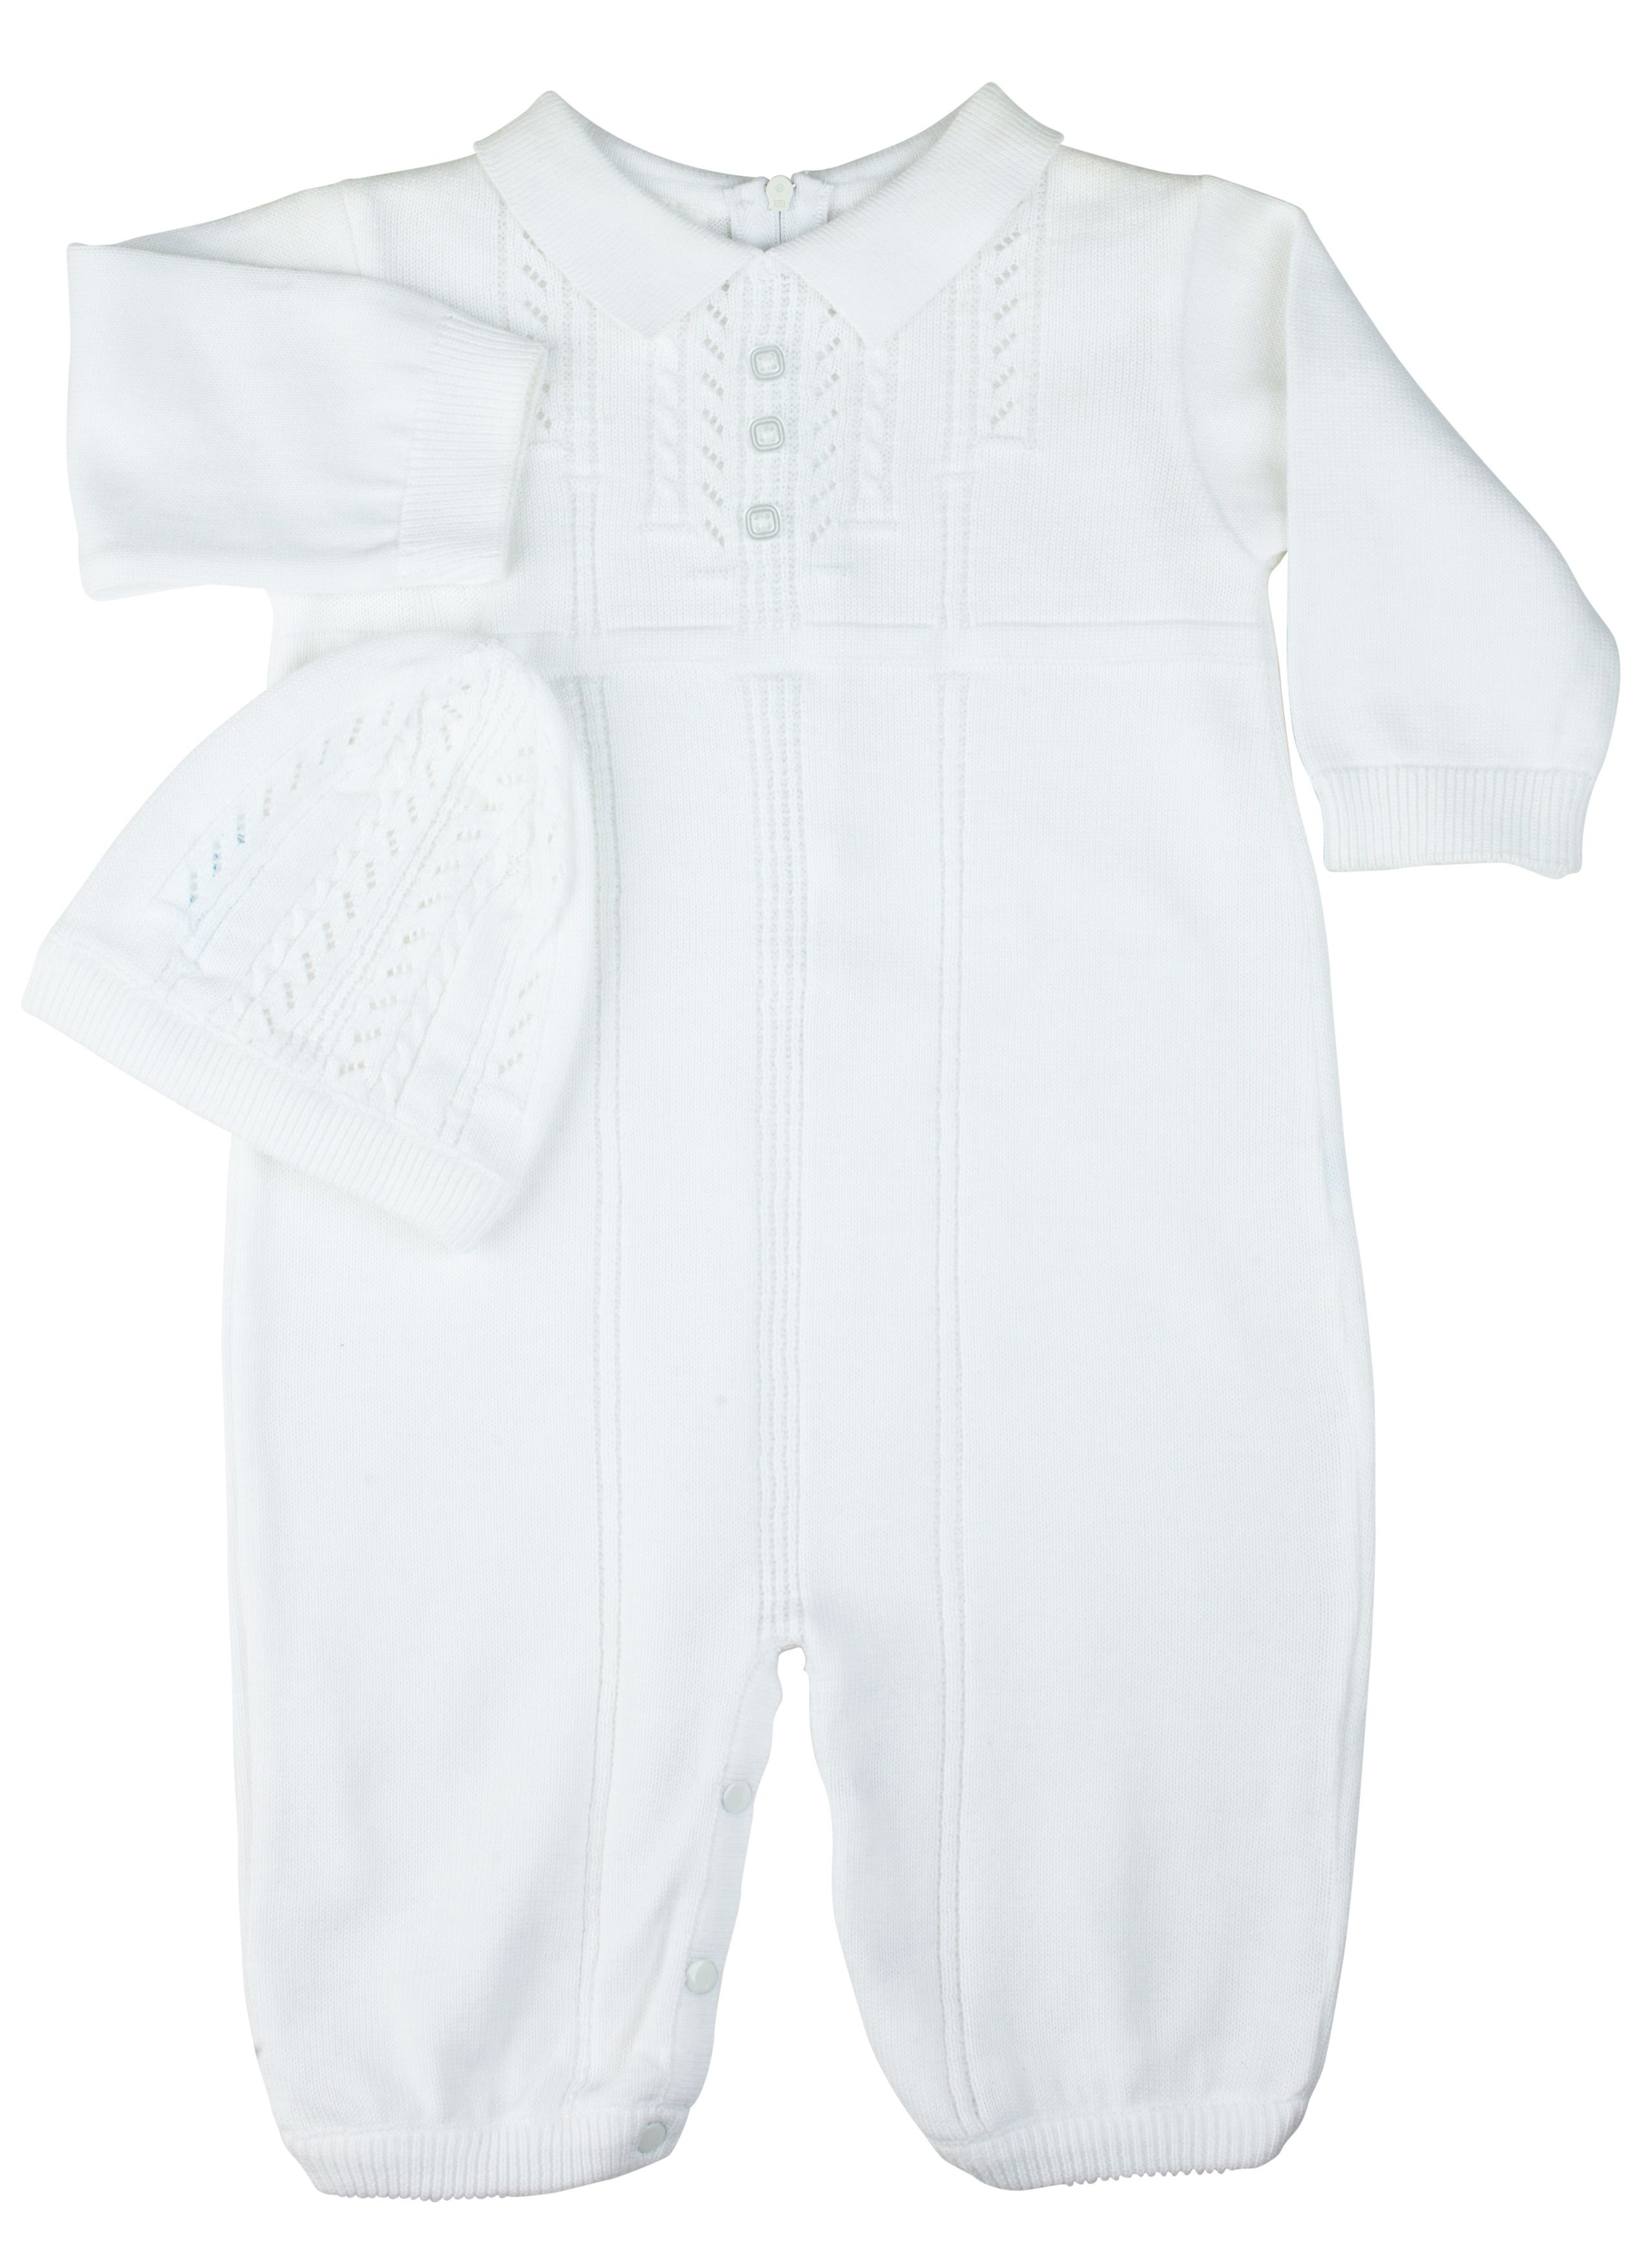 Pin By Feltman Brothers On Contemporary Knitwear Baby